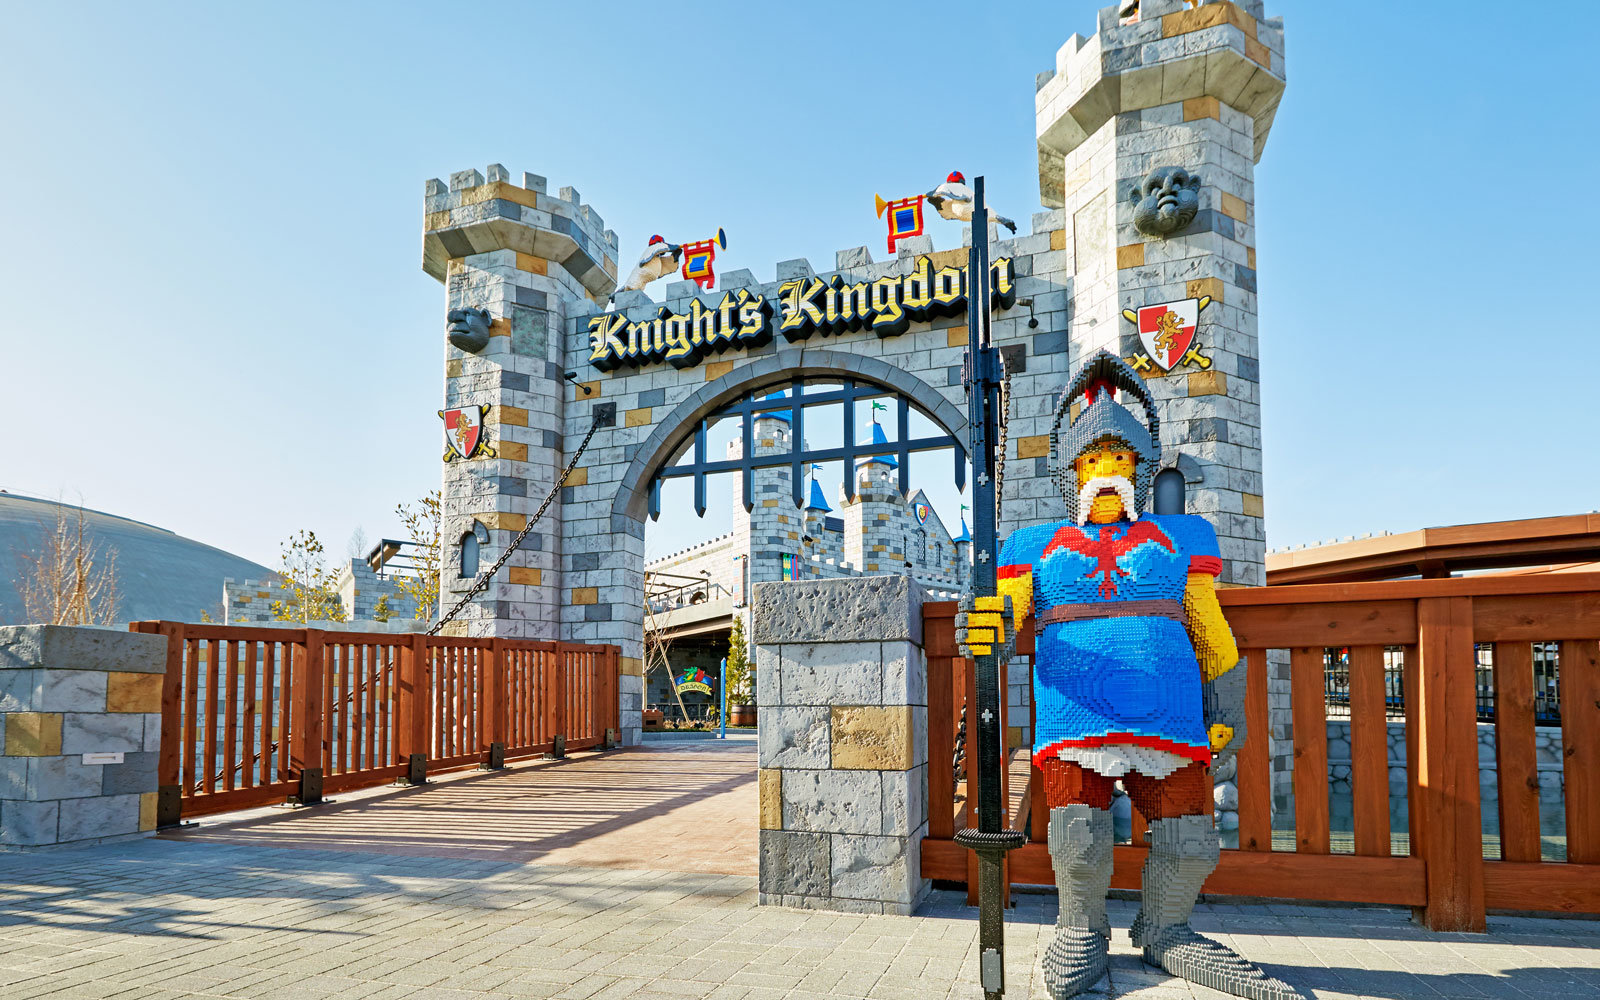 Knights Kingdom